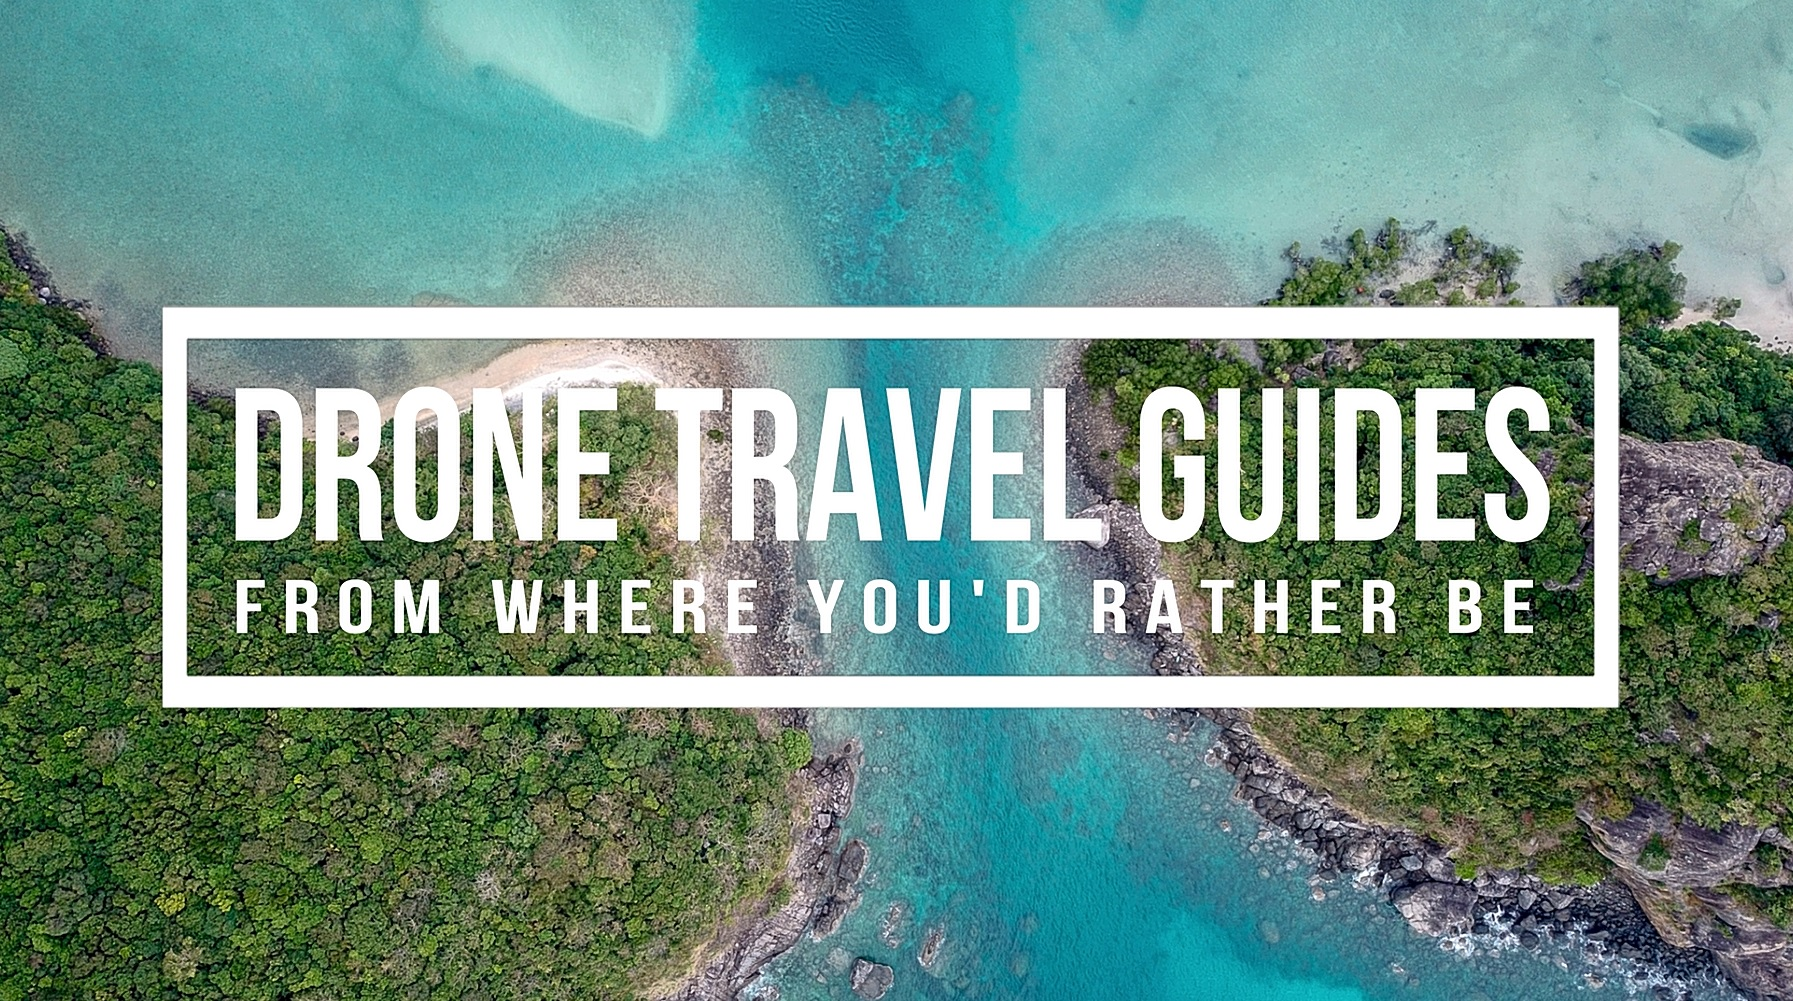 Drone Travel Guides